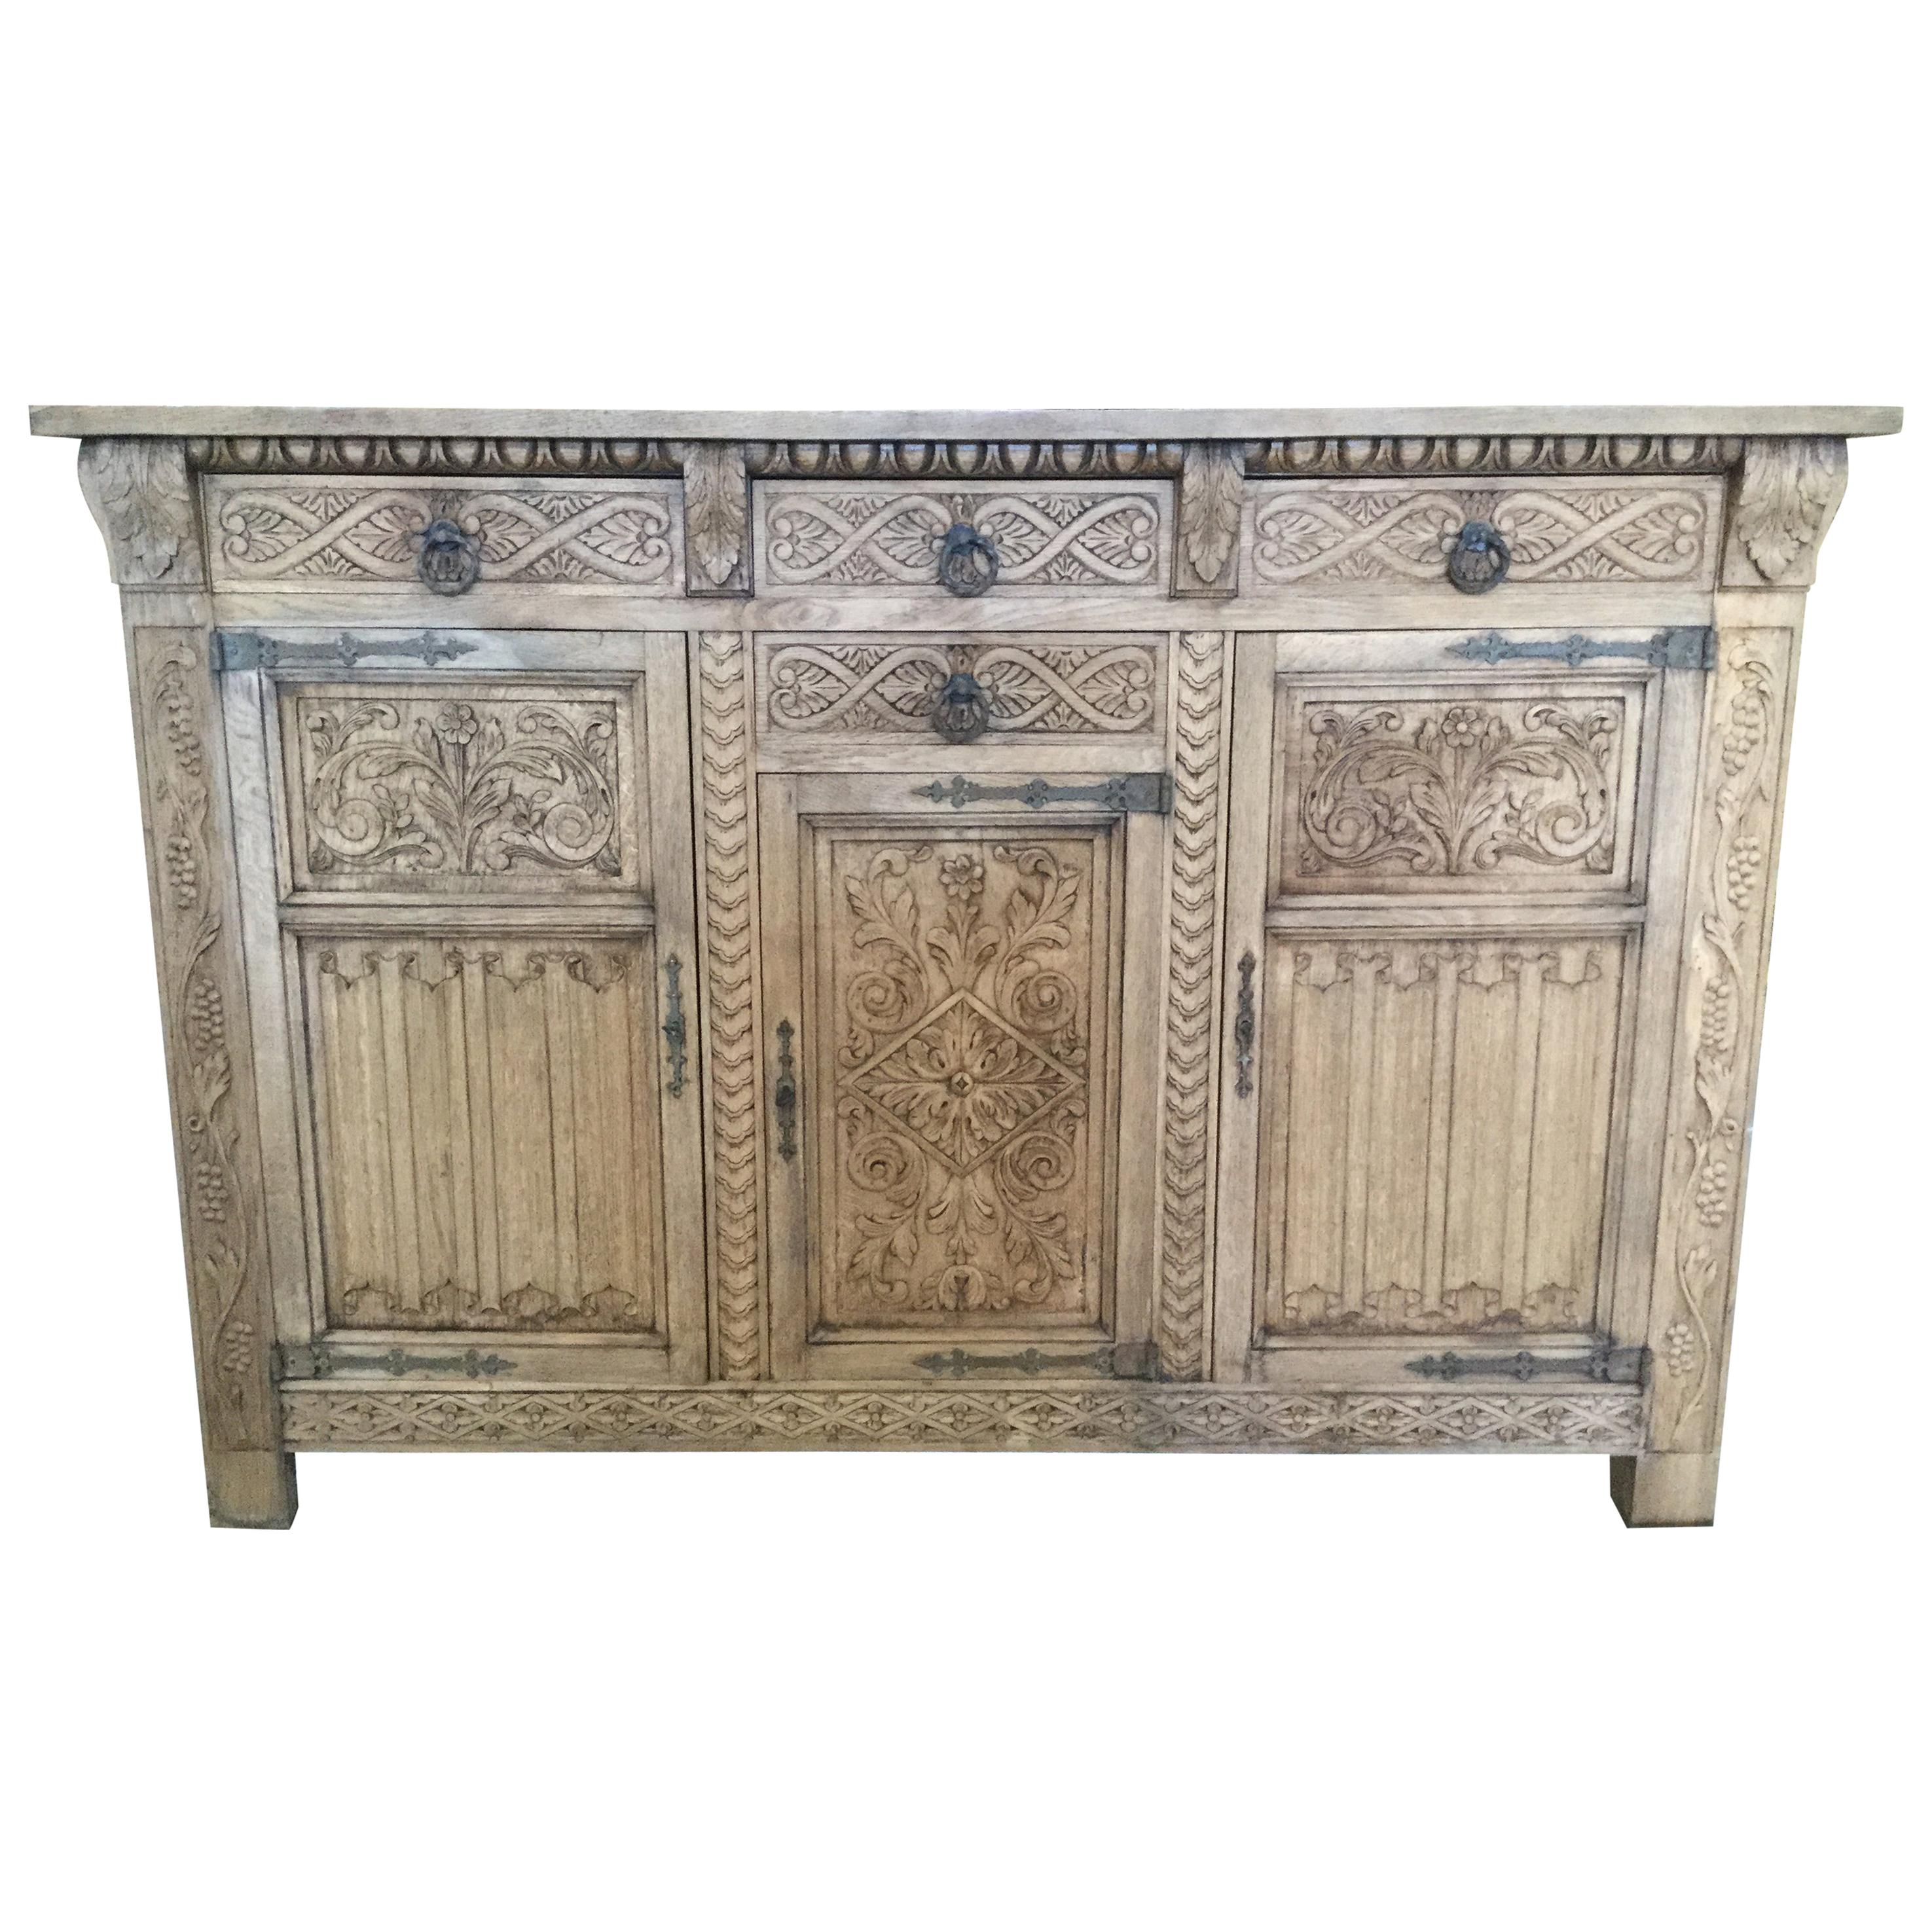 Superbe Meticulously Carved Bleached Wood French Buffet Credenza For Sale